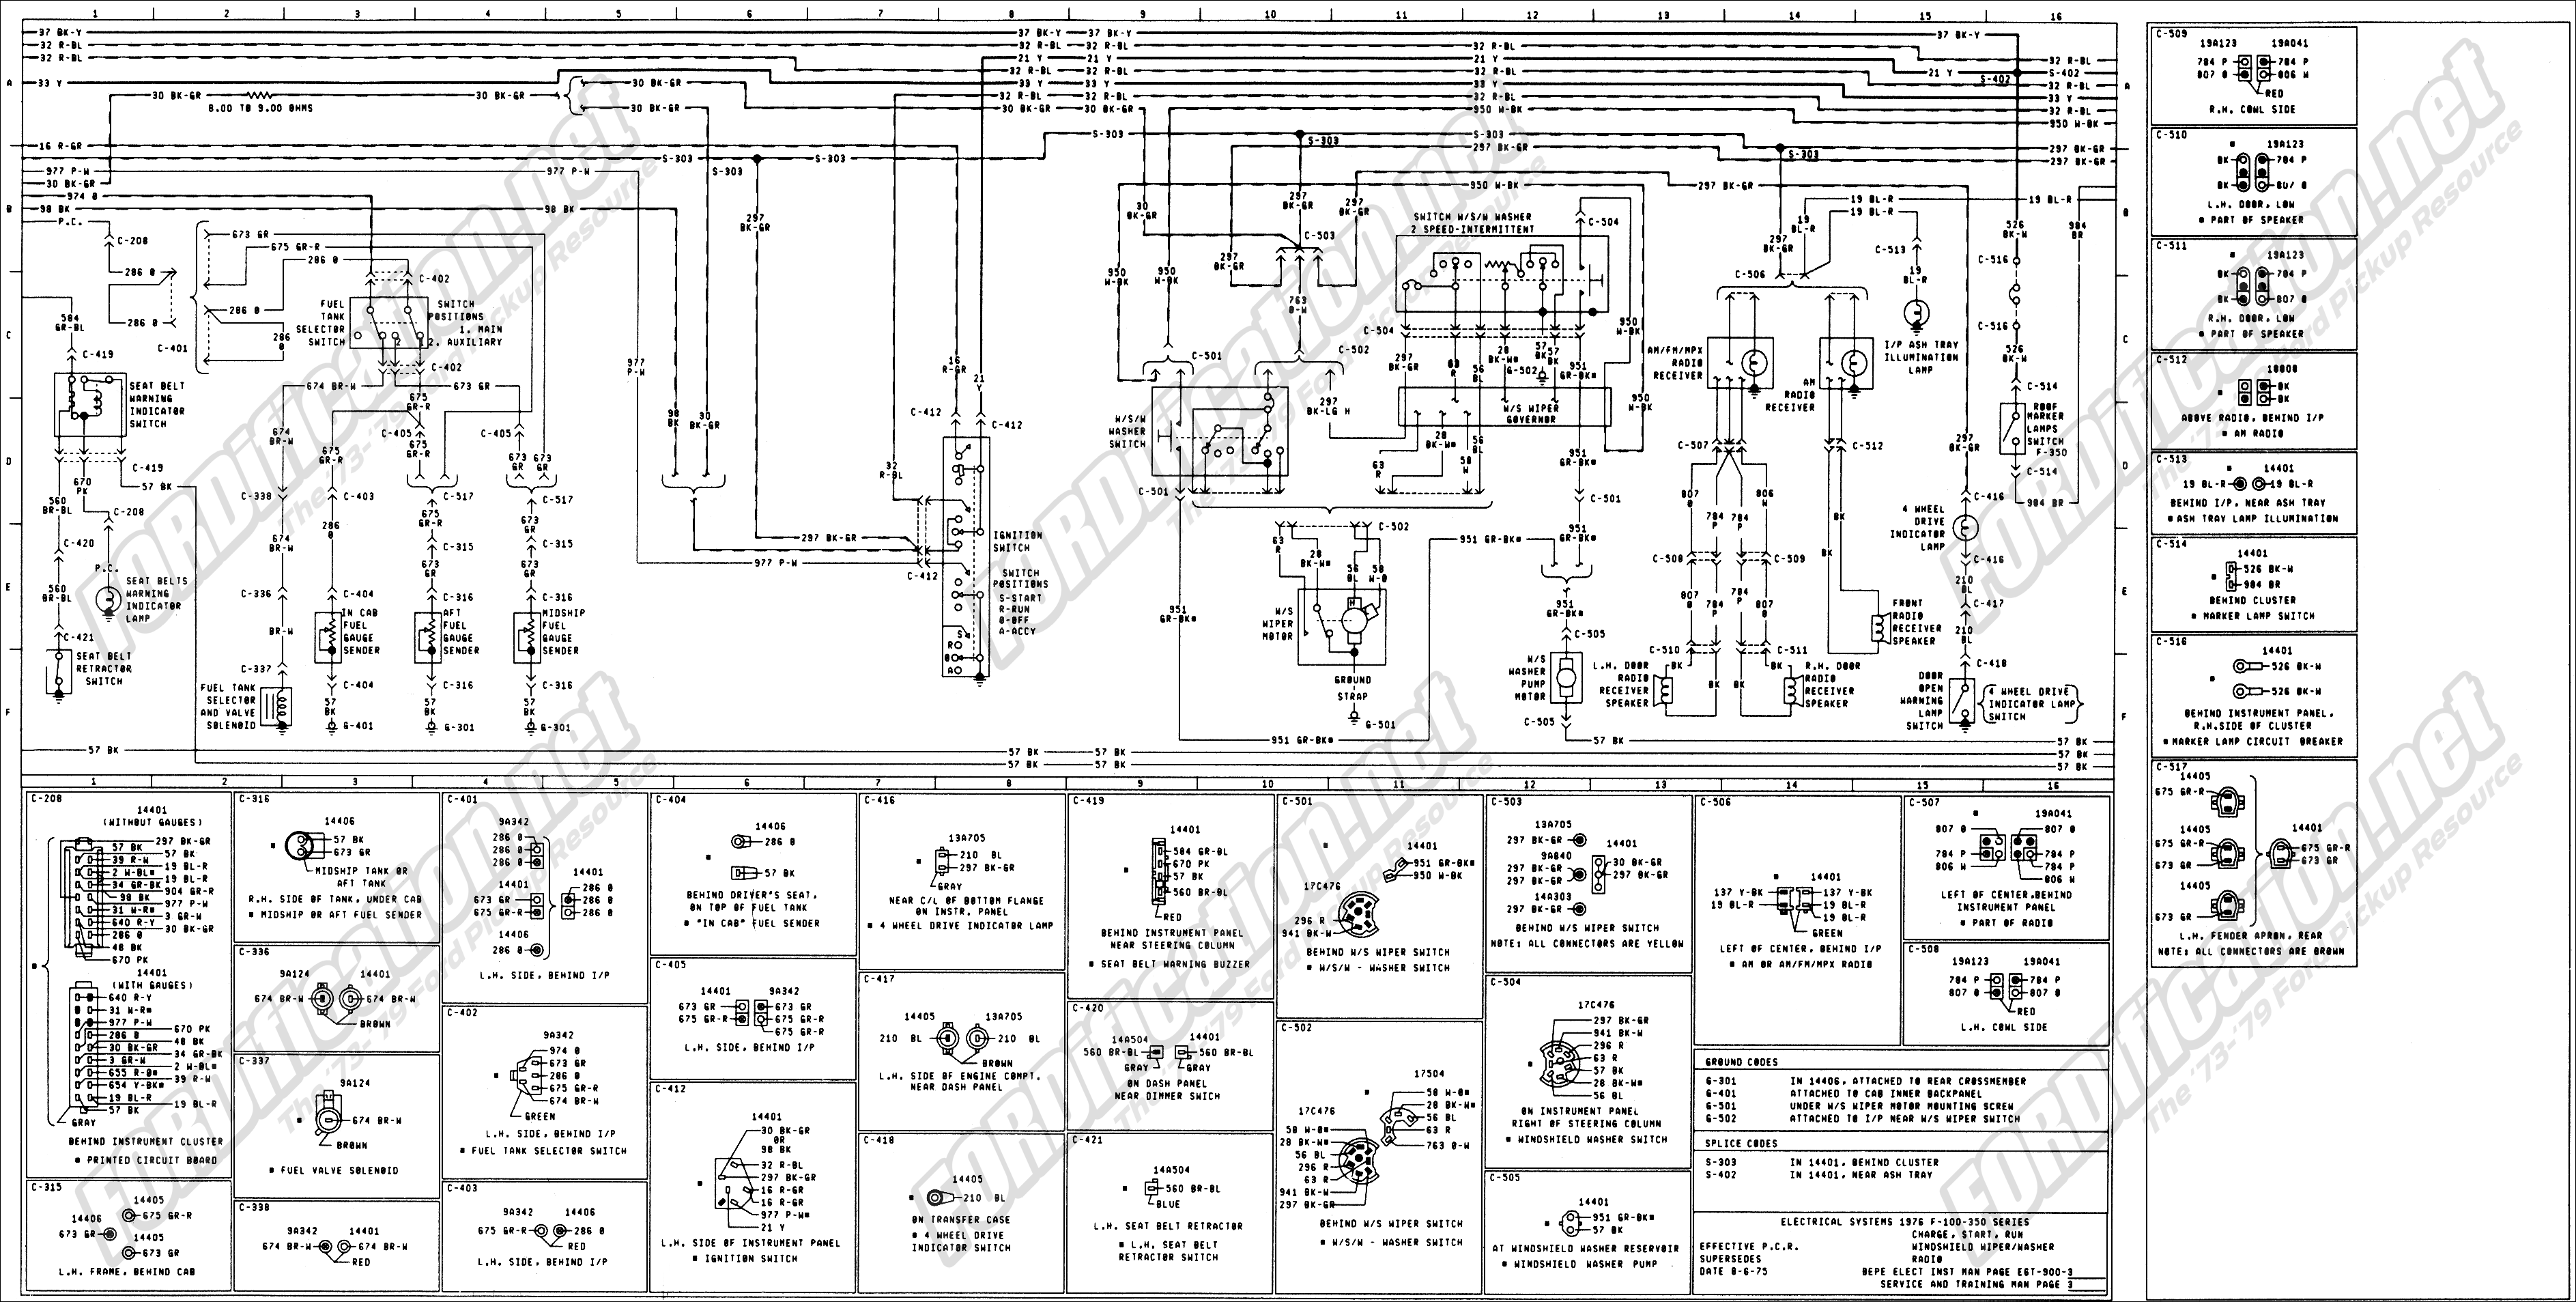 wiring_76master_3of9 1973 1979 ford truck wiring diagrams & schematics fordification net wiring schematics at n-0.co